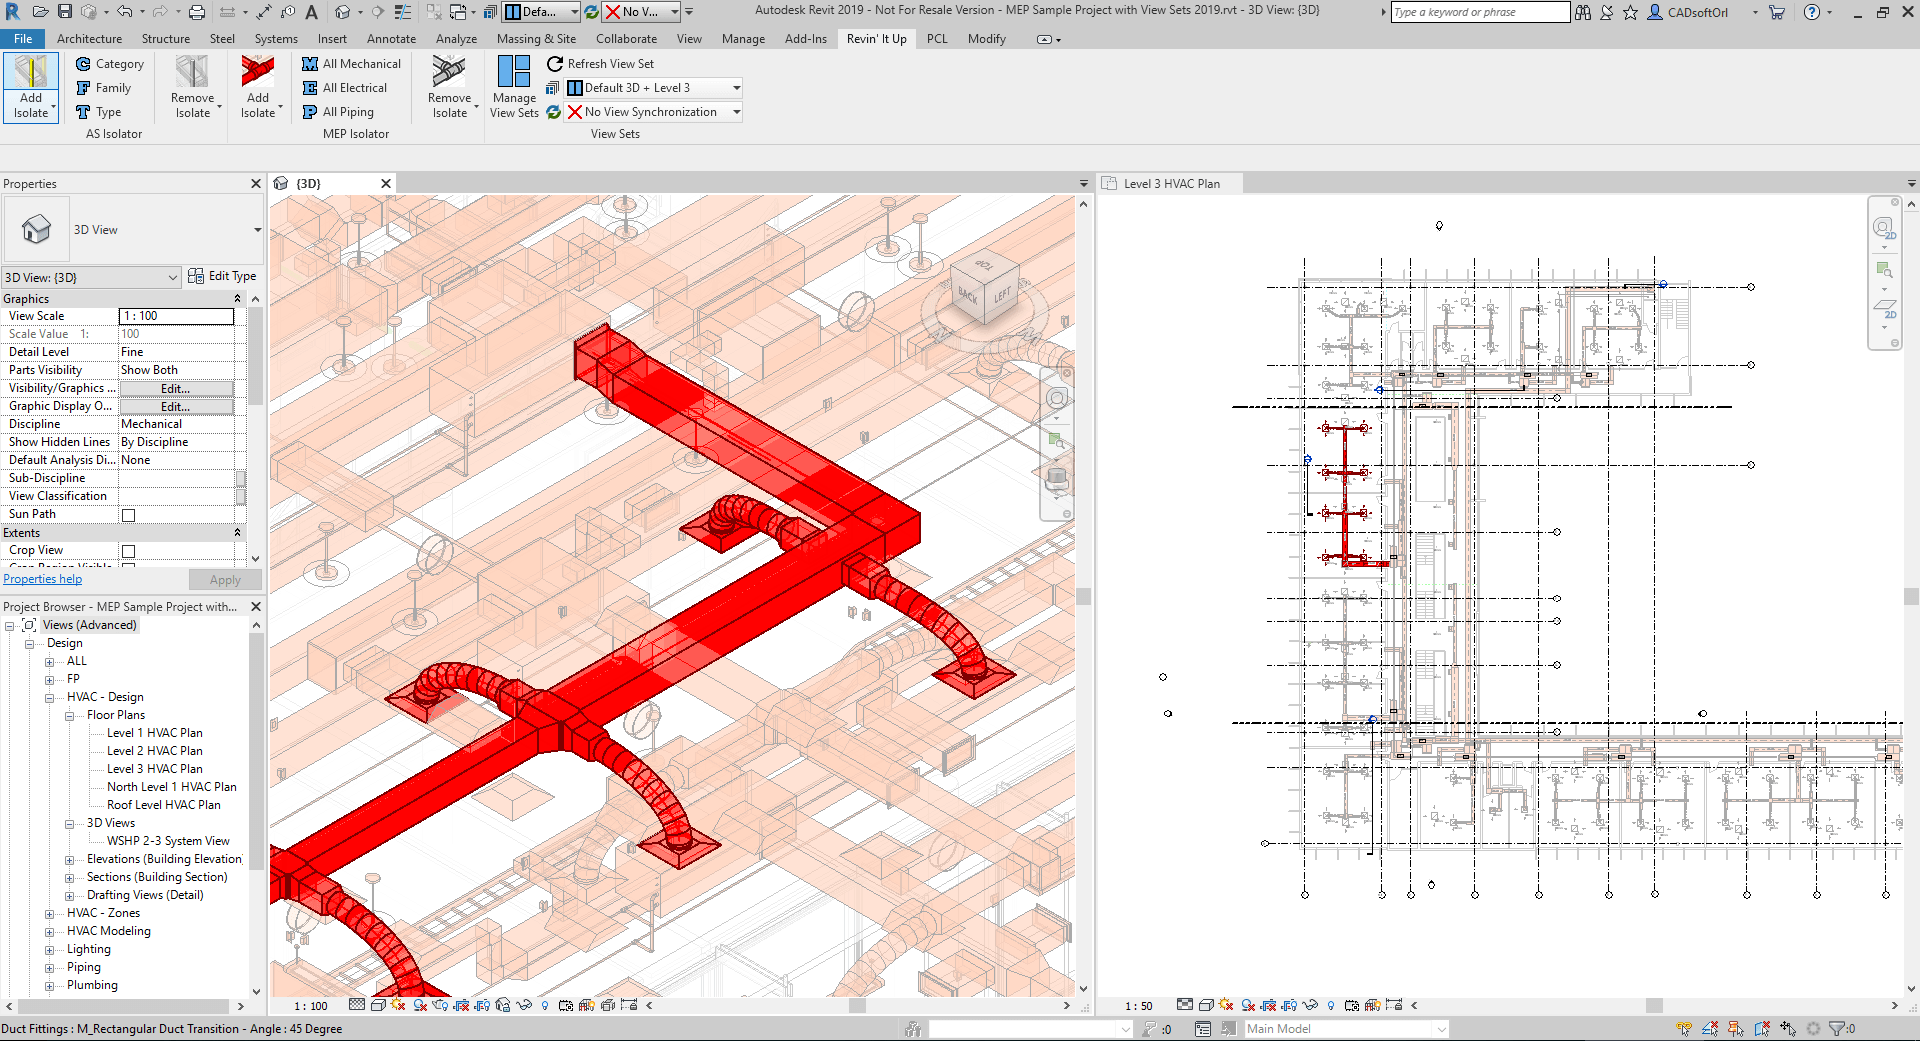 BIM Software - Autodesk Revit